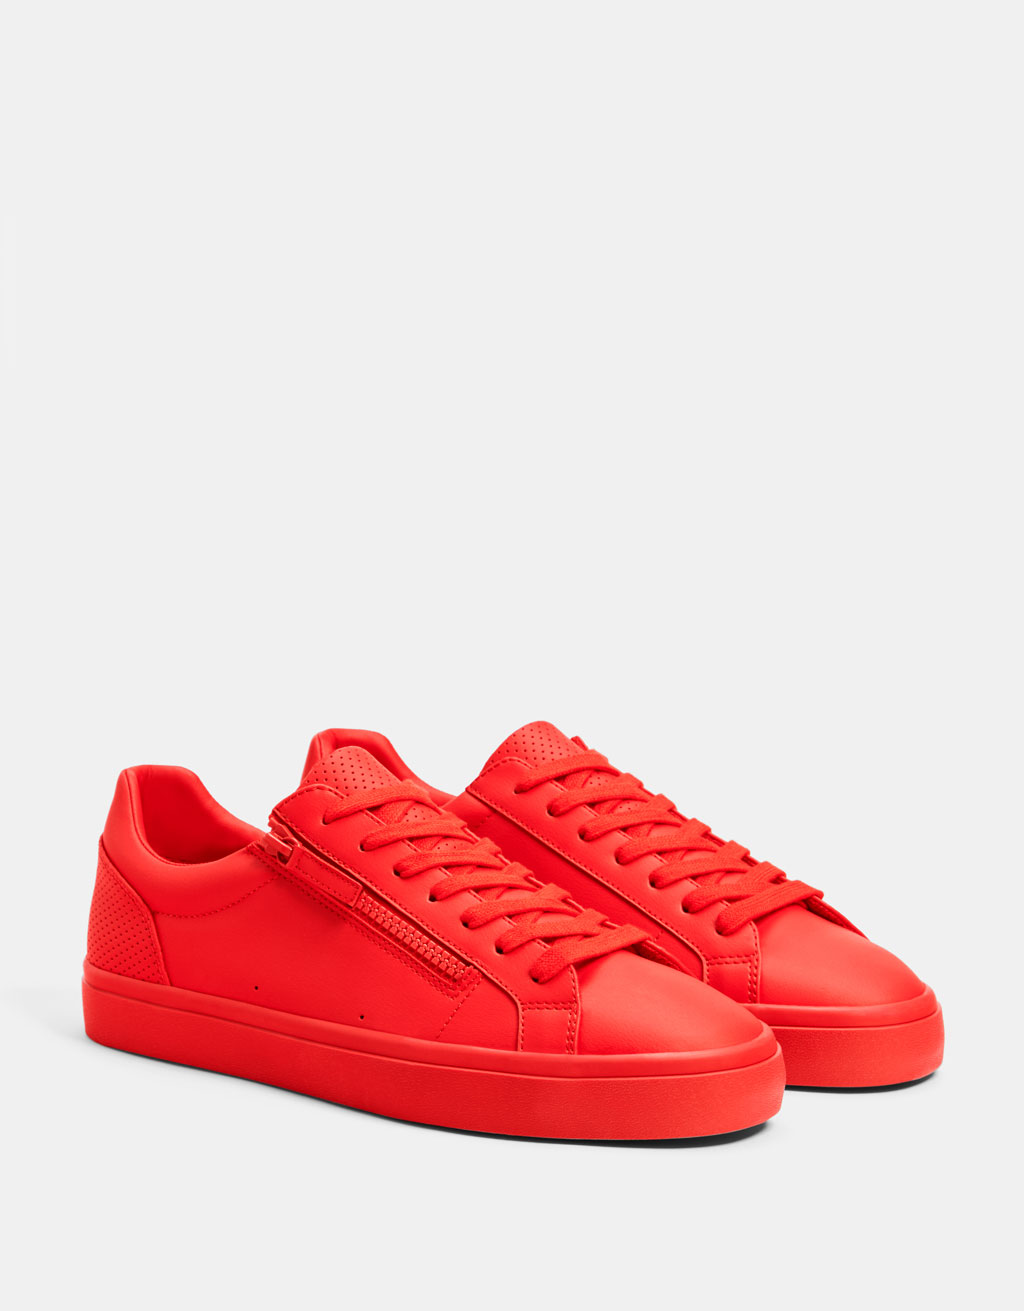 Men's red trainers with zip